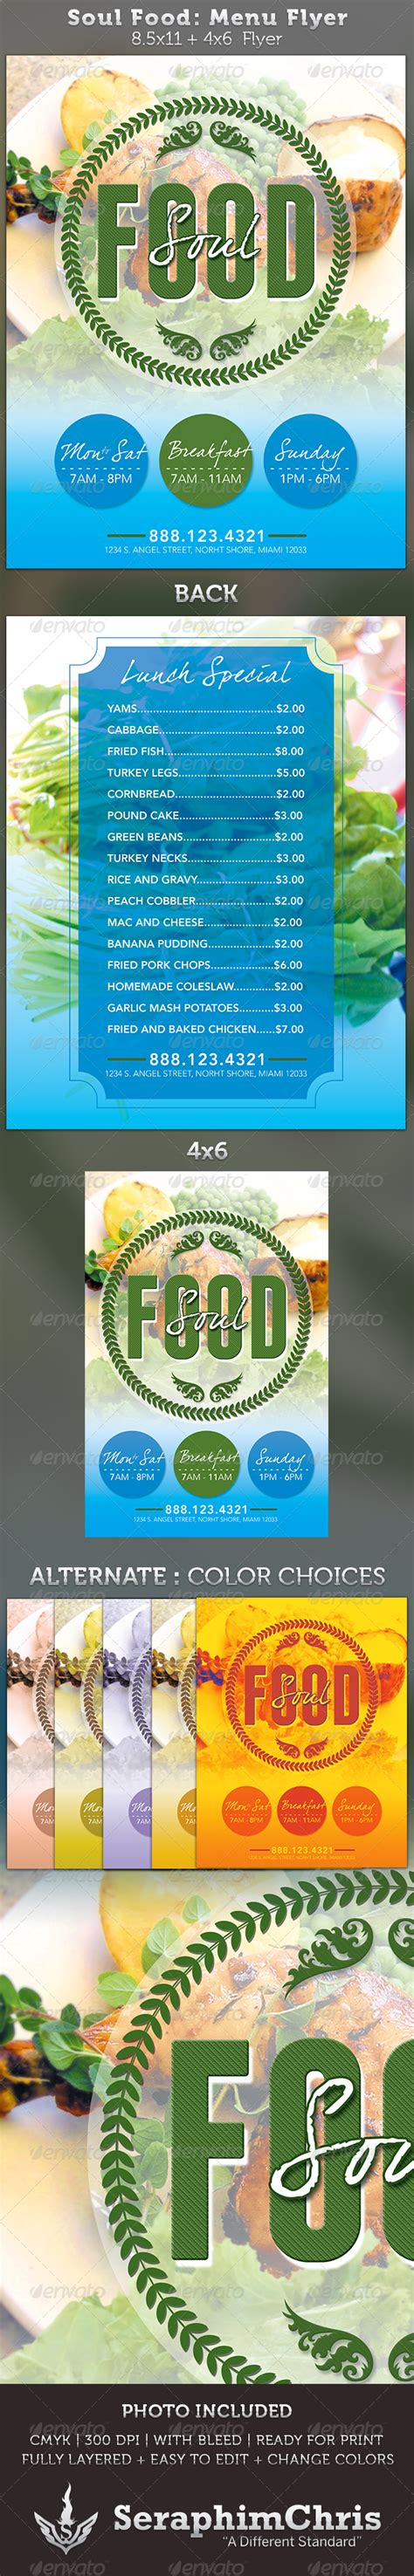 Sle Soul Food Dinner Flyer 187 Tinkytyler Org Stock Photos Graphics Graphicriver Iii Flyer Template